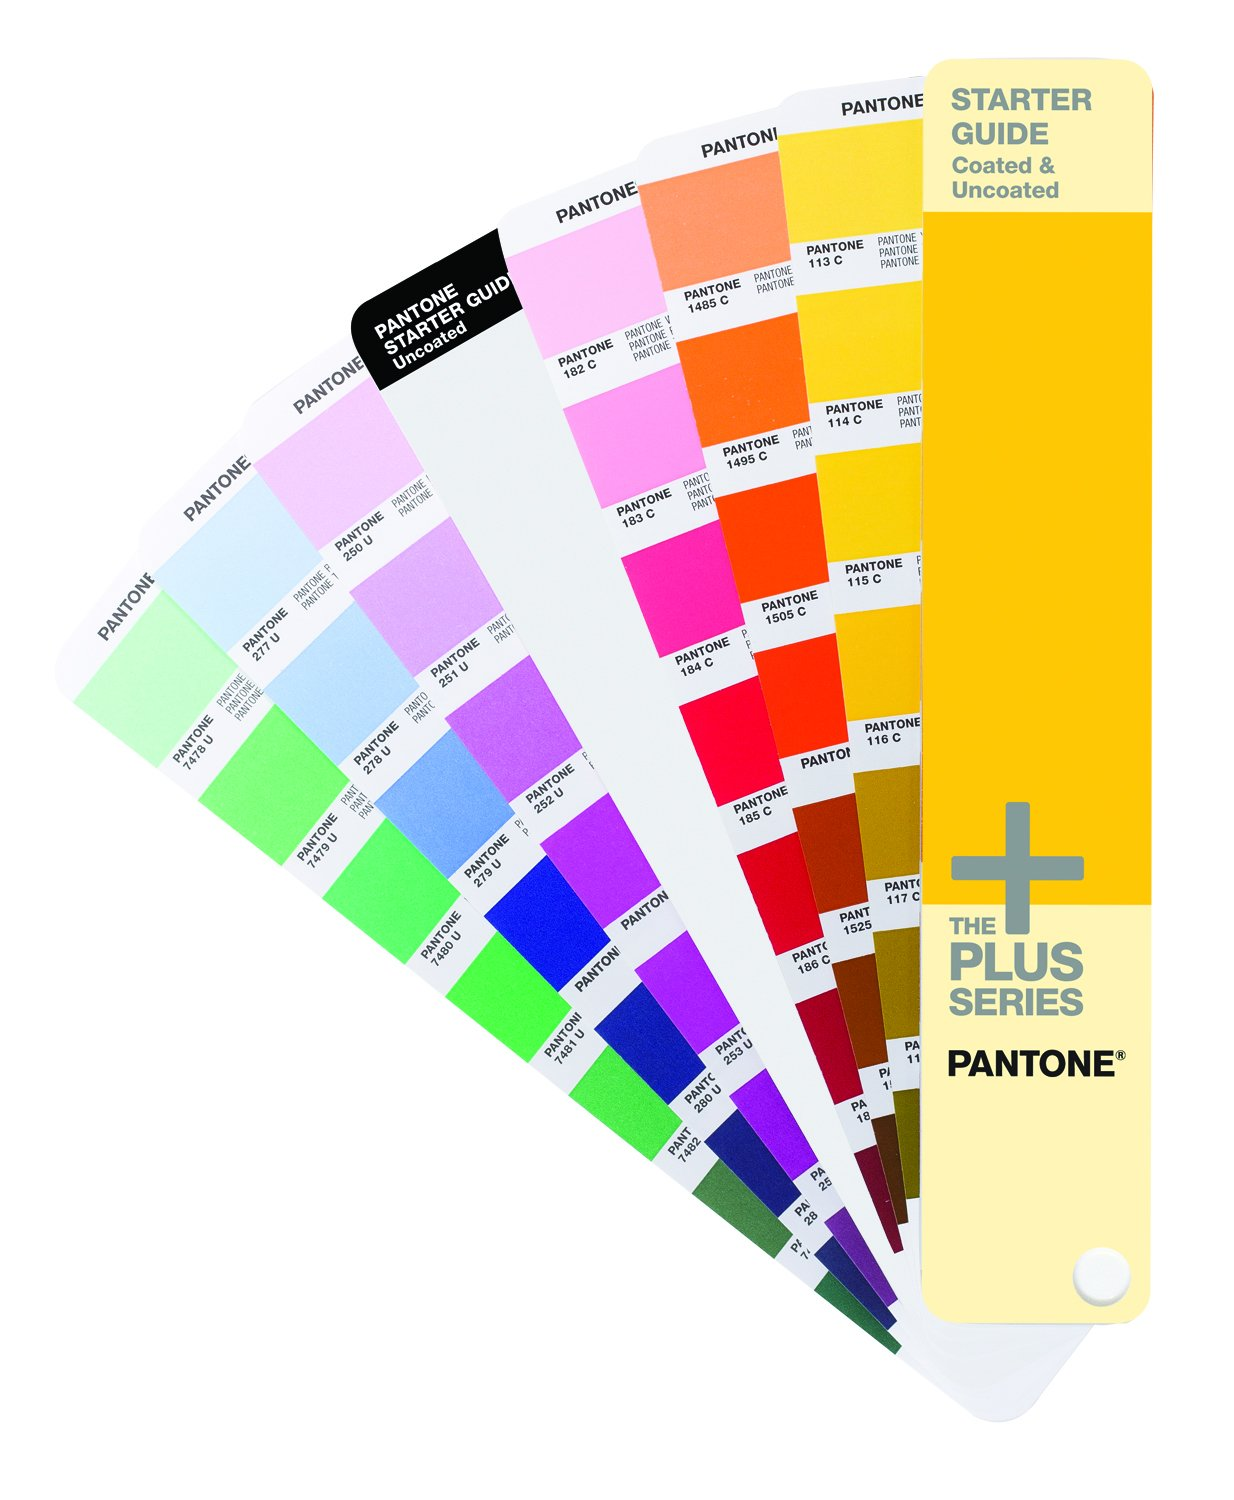 Pantone Plus Series Starter Guide GG1511 by Pantone